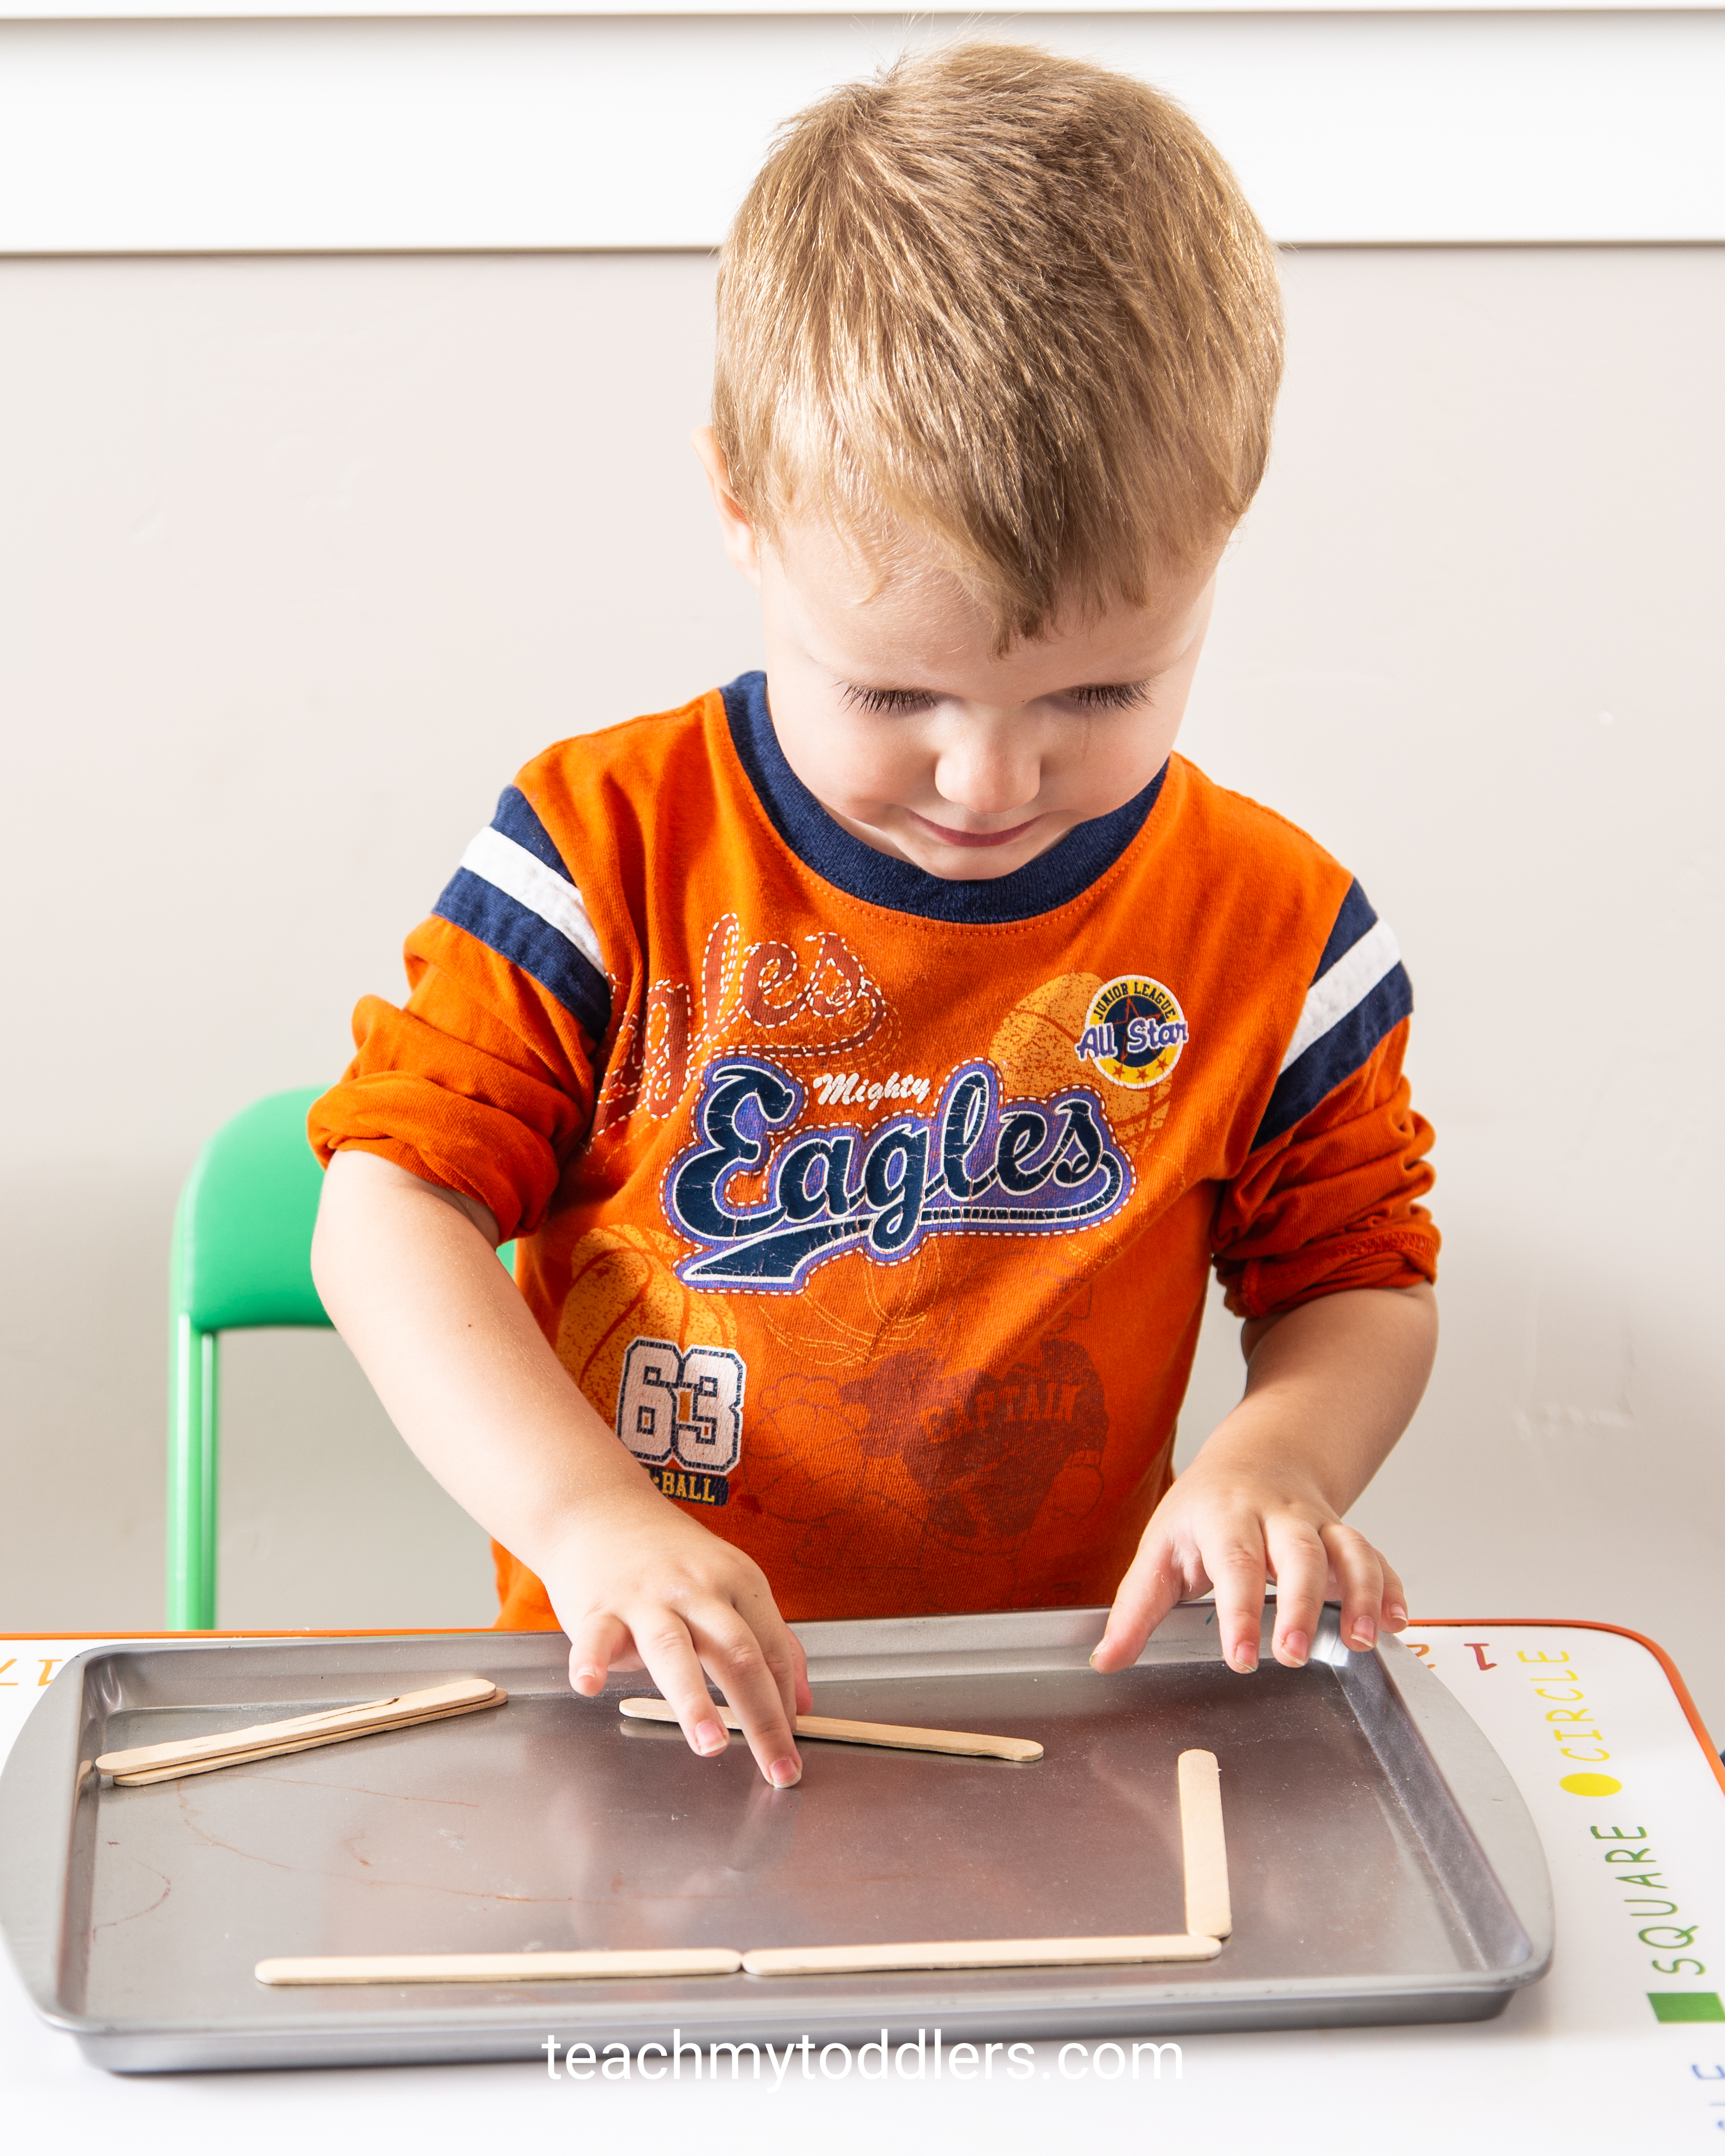 Use these fun rectangle trays activities to teach toddlers shapes